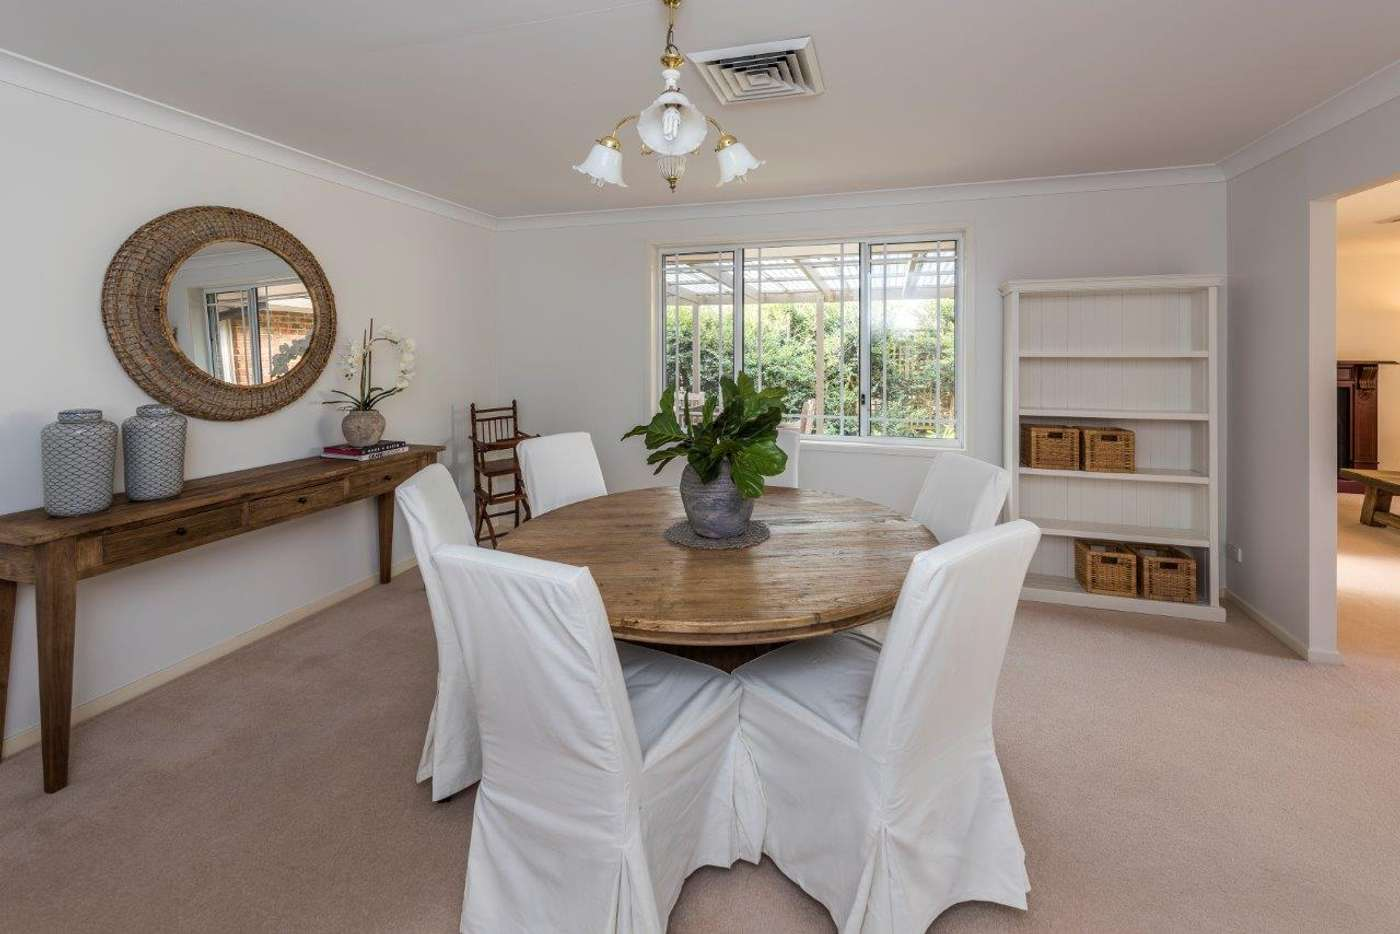 Sixth view of Homely house listing, 7A Greyleaves Avenue, Burradoo NSW 2576